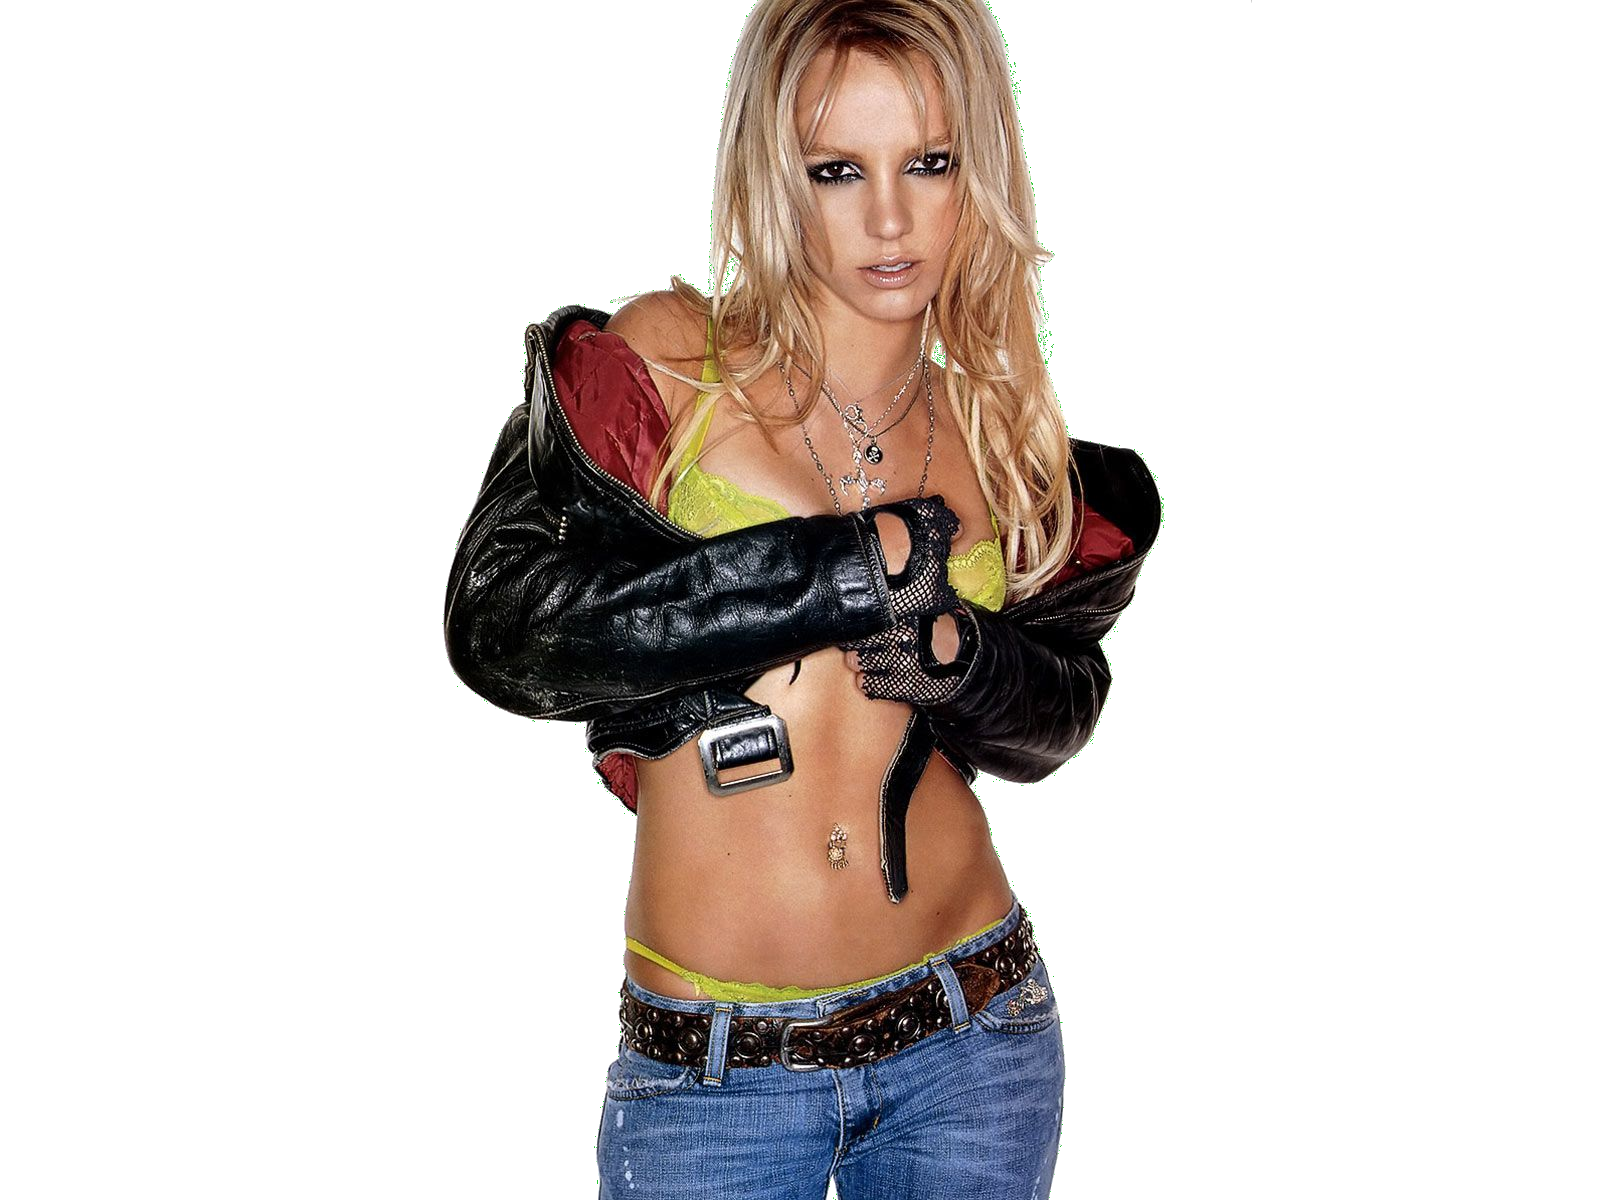 HD Wallpaper and background photos of Br-HD Wallpaper and background photos of Britney for fans of Britney Spears  images.-17